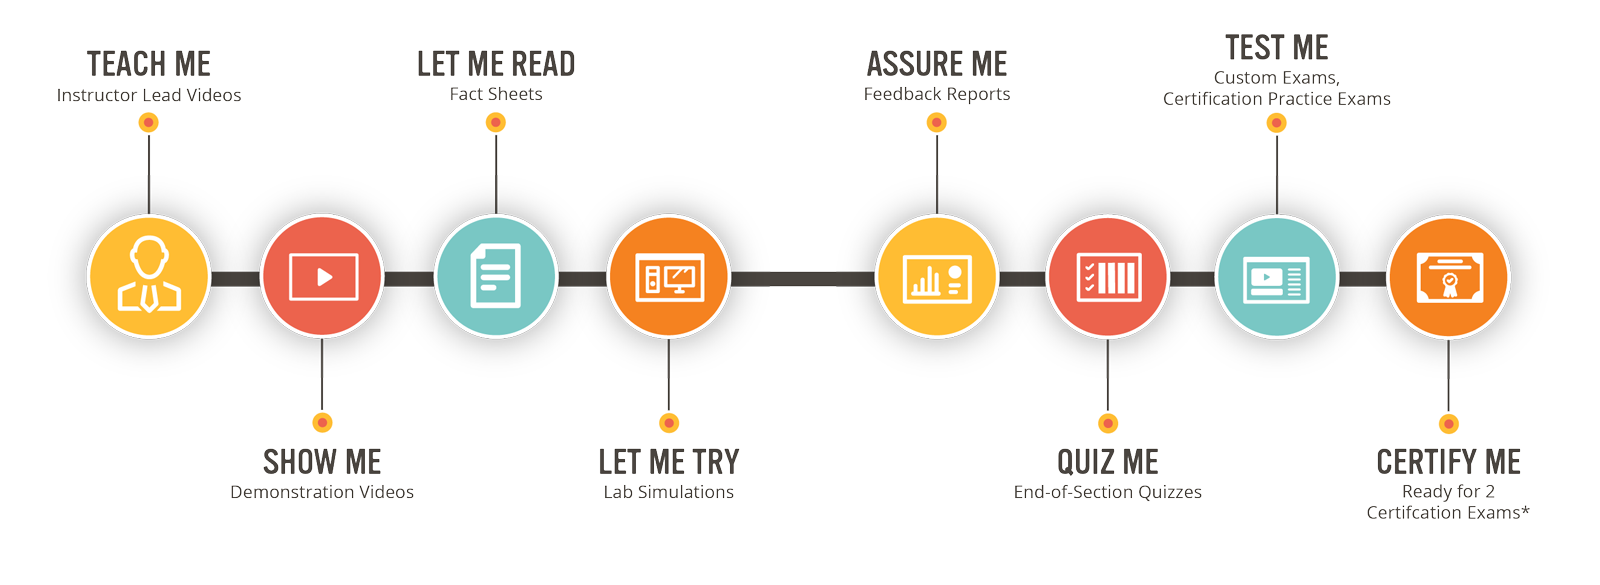 TestOut's 8 Learning Components - Teach Me, Show Me, Let Me Read, Let Me Try, Assure Me, Quiz Me, Test Me, and Certifiy Me